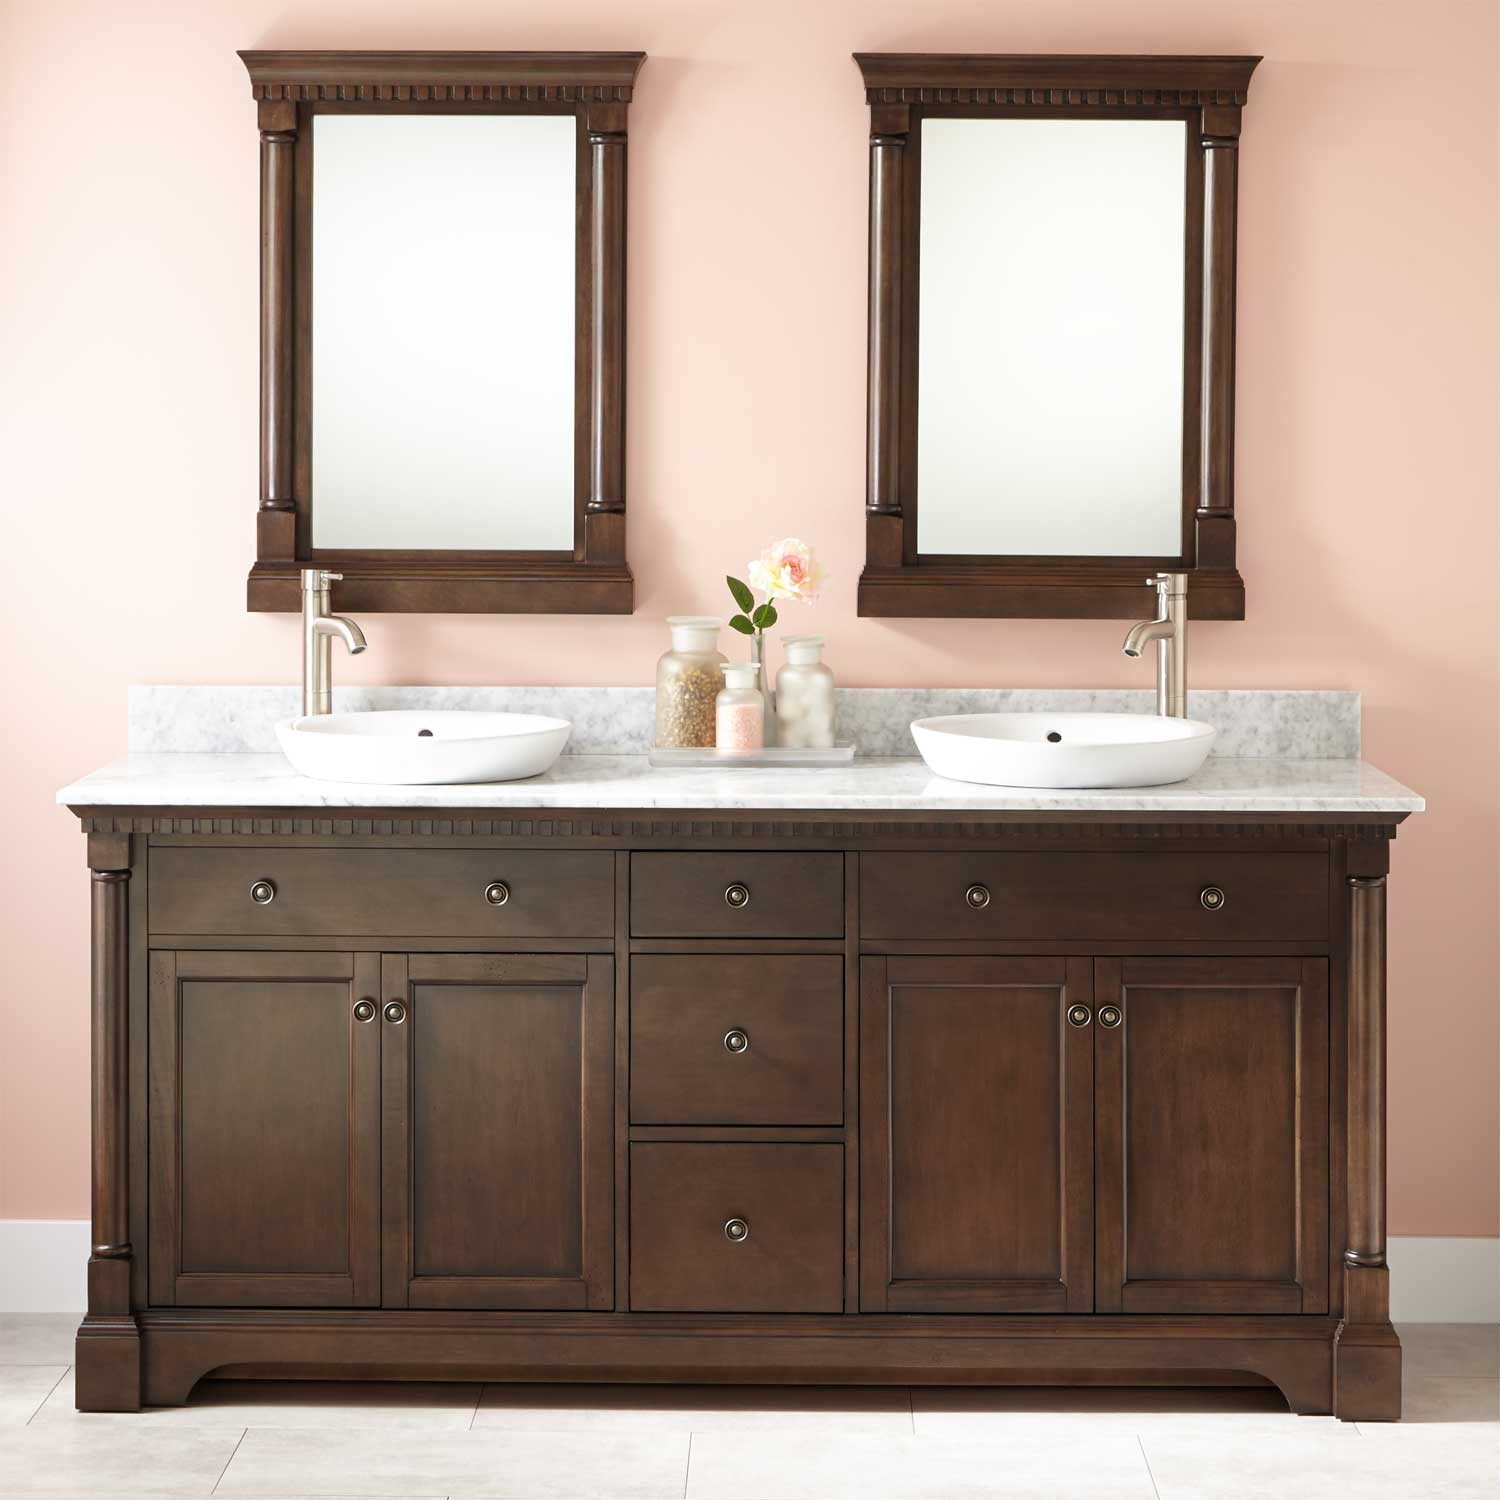 Glamorous Sink : Sink Vanity Cabinet Bathroom Cabinetcorner Corner W intended for Review Bathroom Sink And Vanity